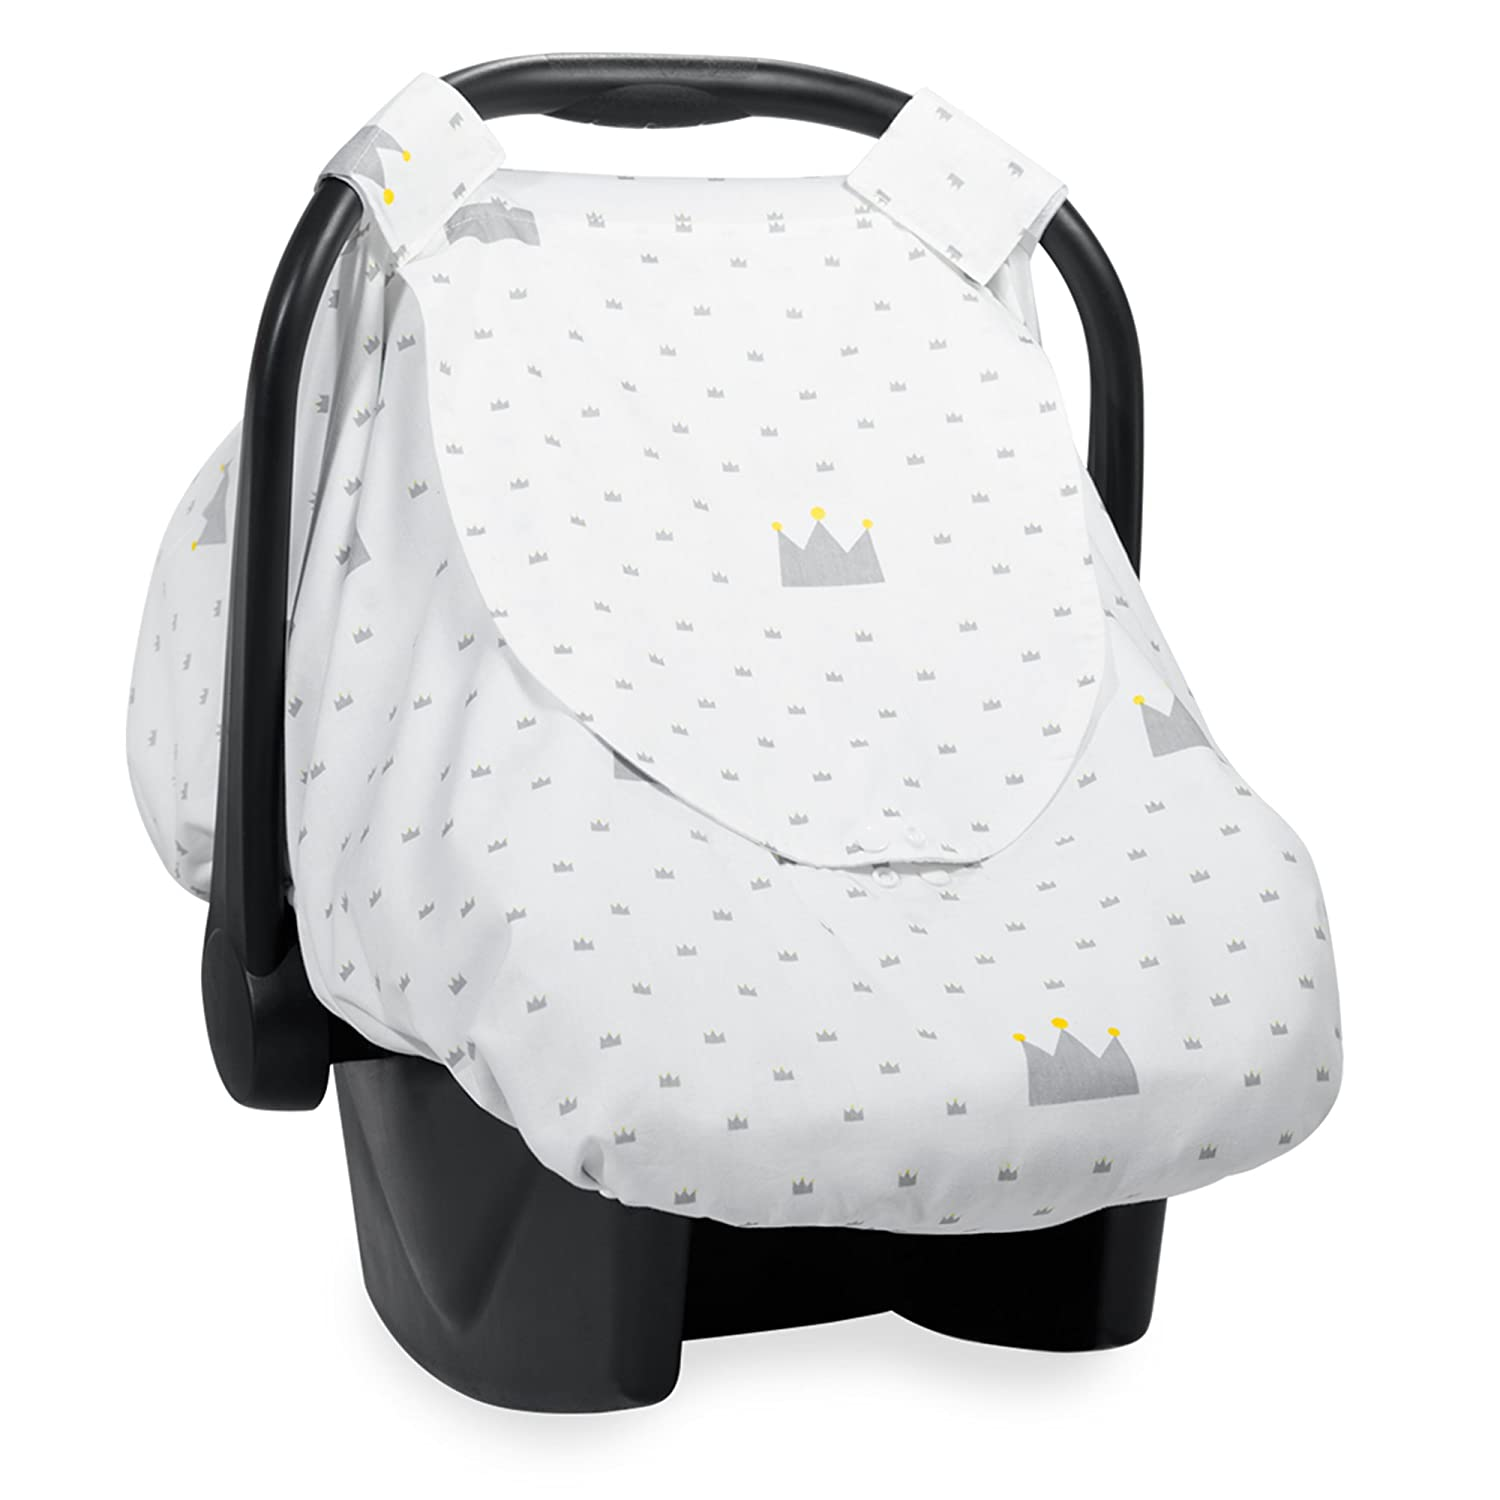 Reversible Car Seat Canopy | Infant Car Seat Cover for Boys or Girls | Nursing Cover with Snap Window-Flap, Zipped Anti-Mosquito Mesh by Aylin's Boutique | Perfect Gift Sets for Baby Shower